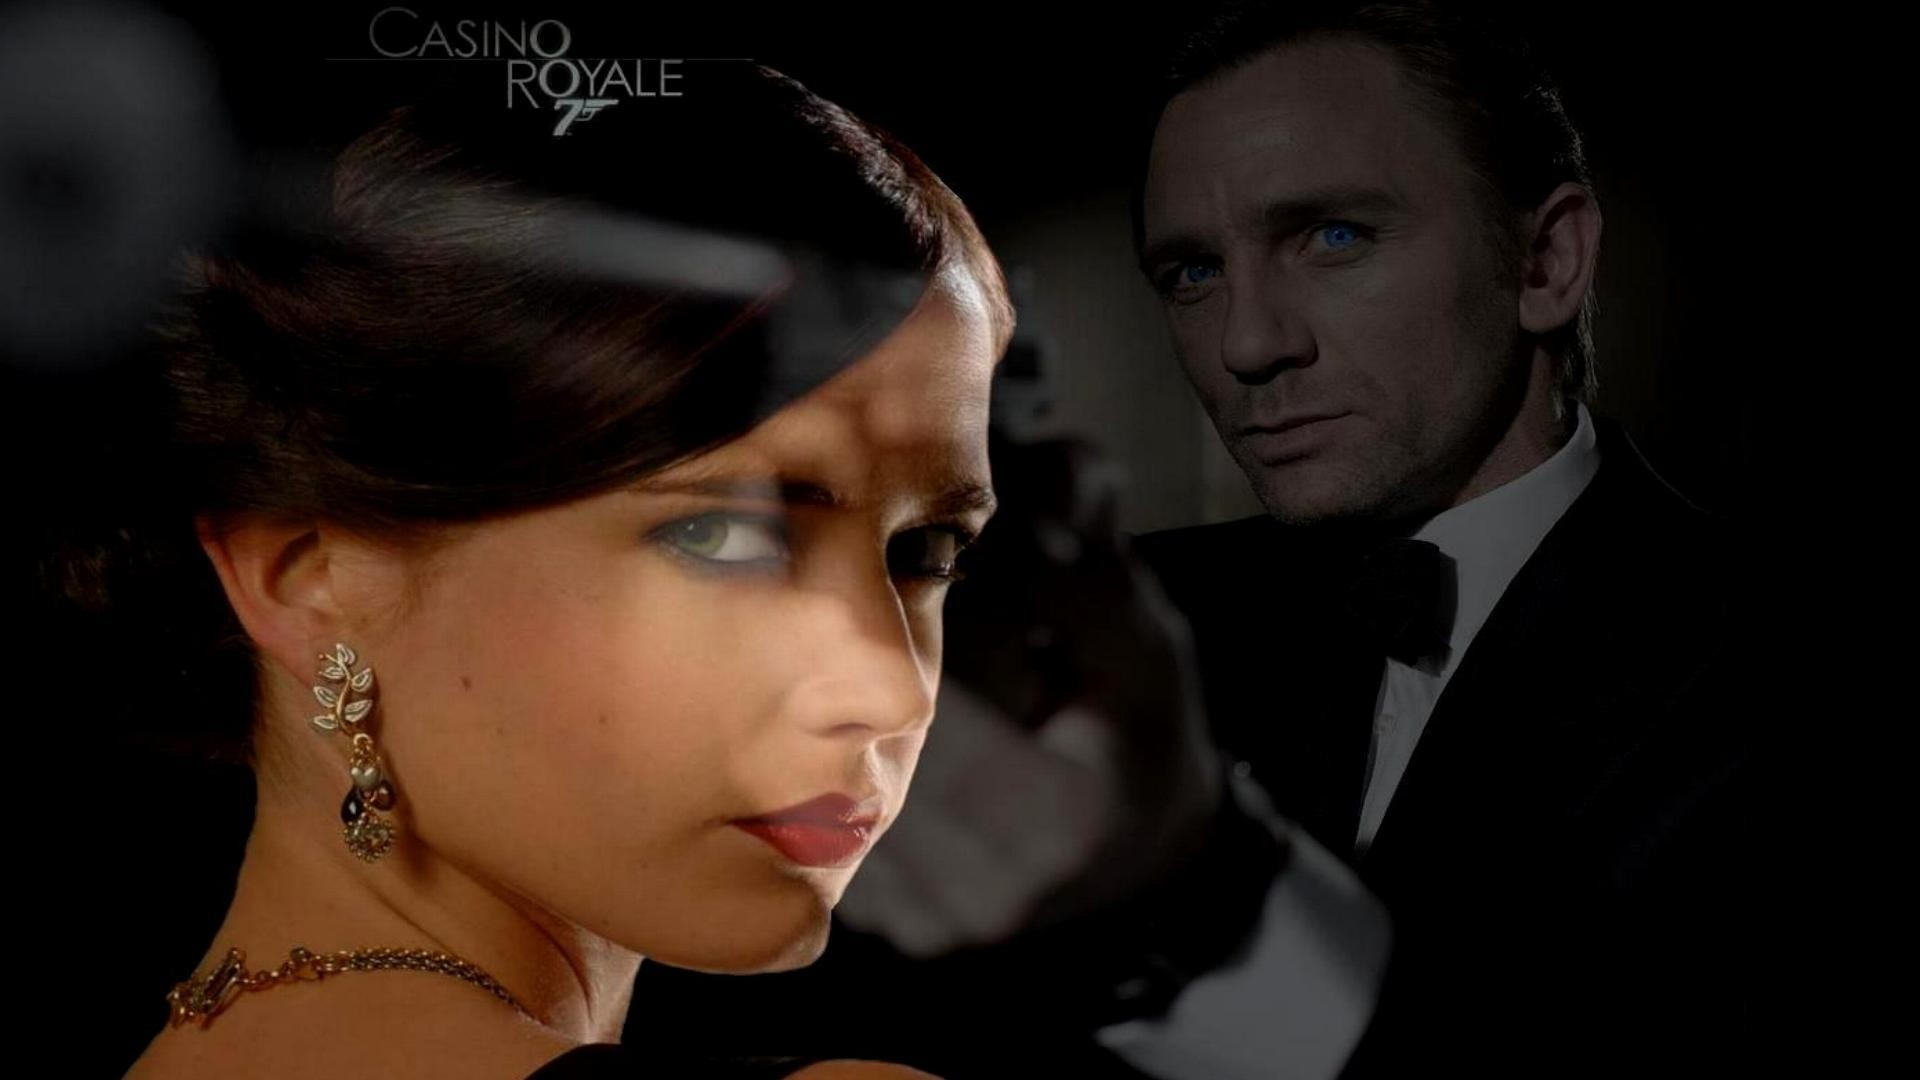 1920x1080 Casino Royale wallpapers Casino Royale background Page 3